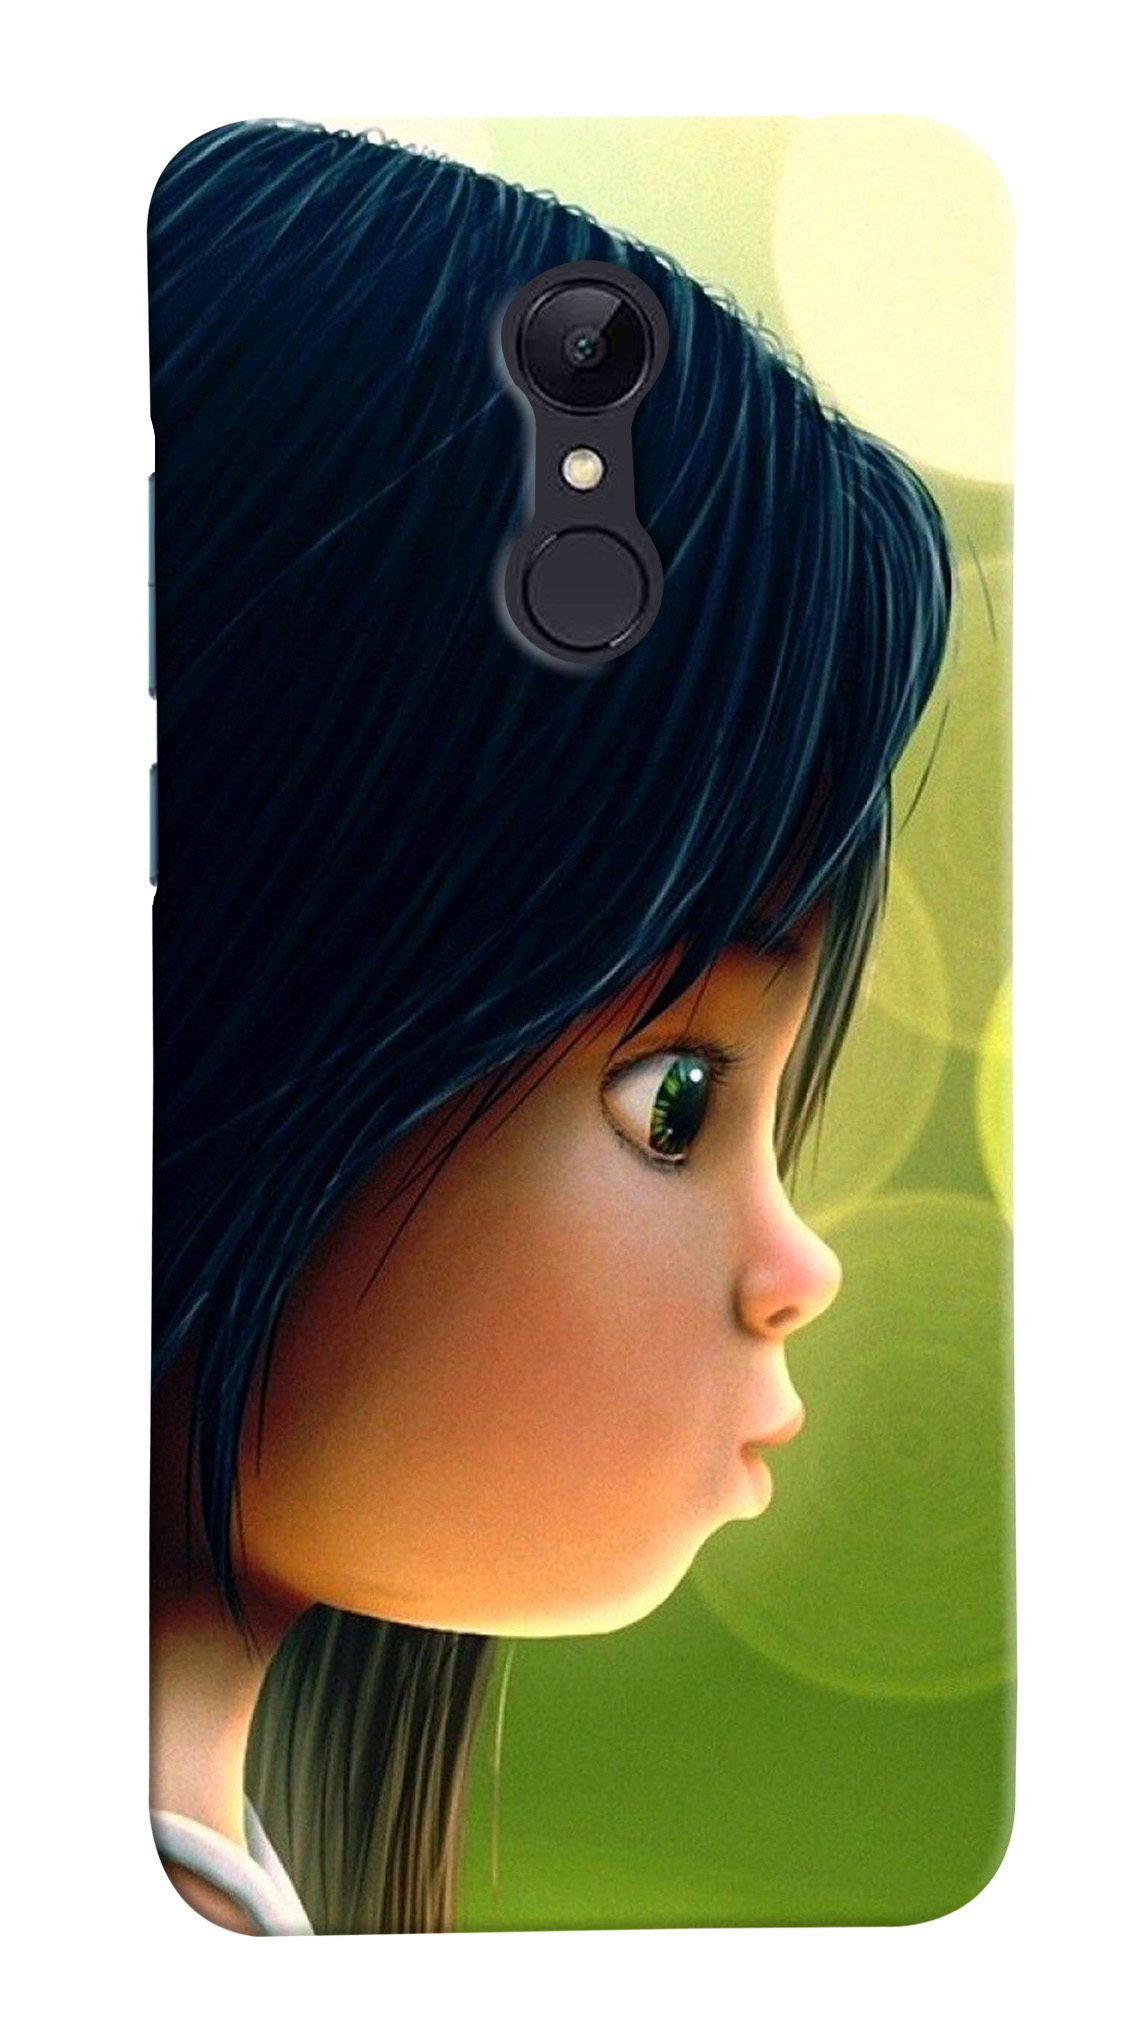 bajajequipments Mobile Cover For Redmi Note4?.. 116